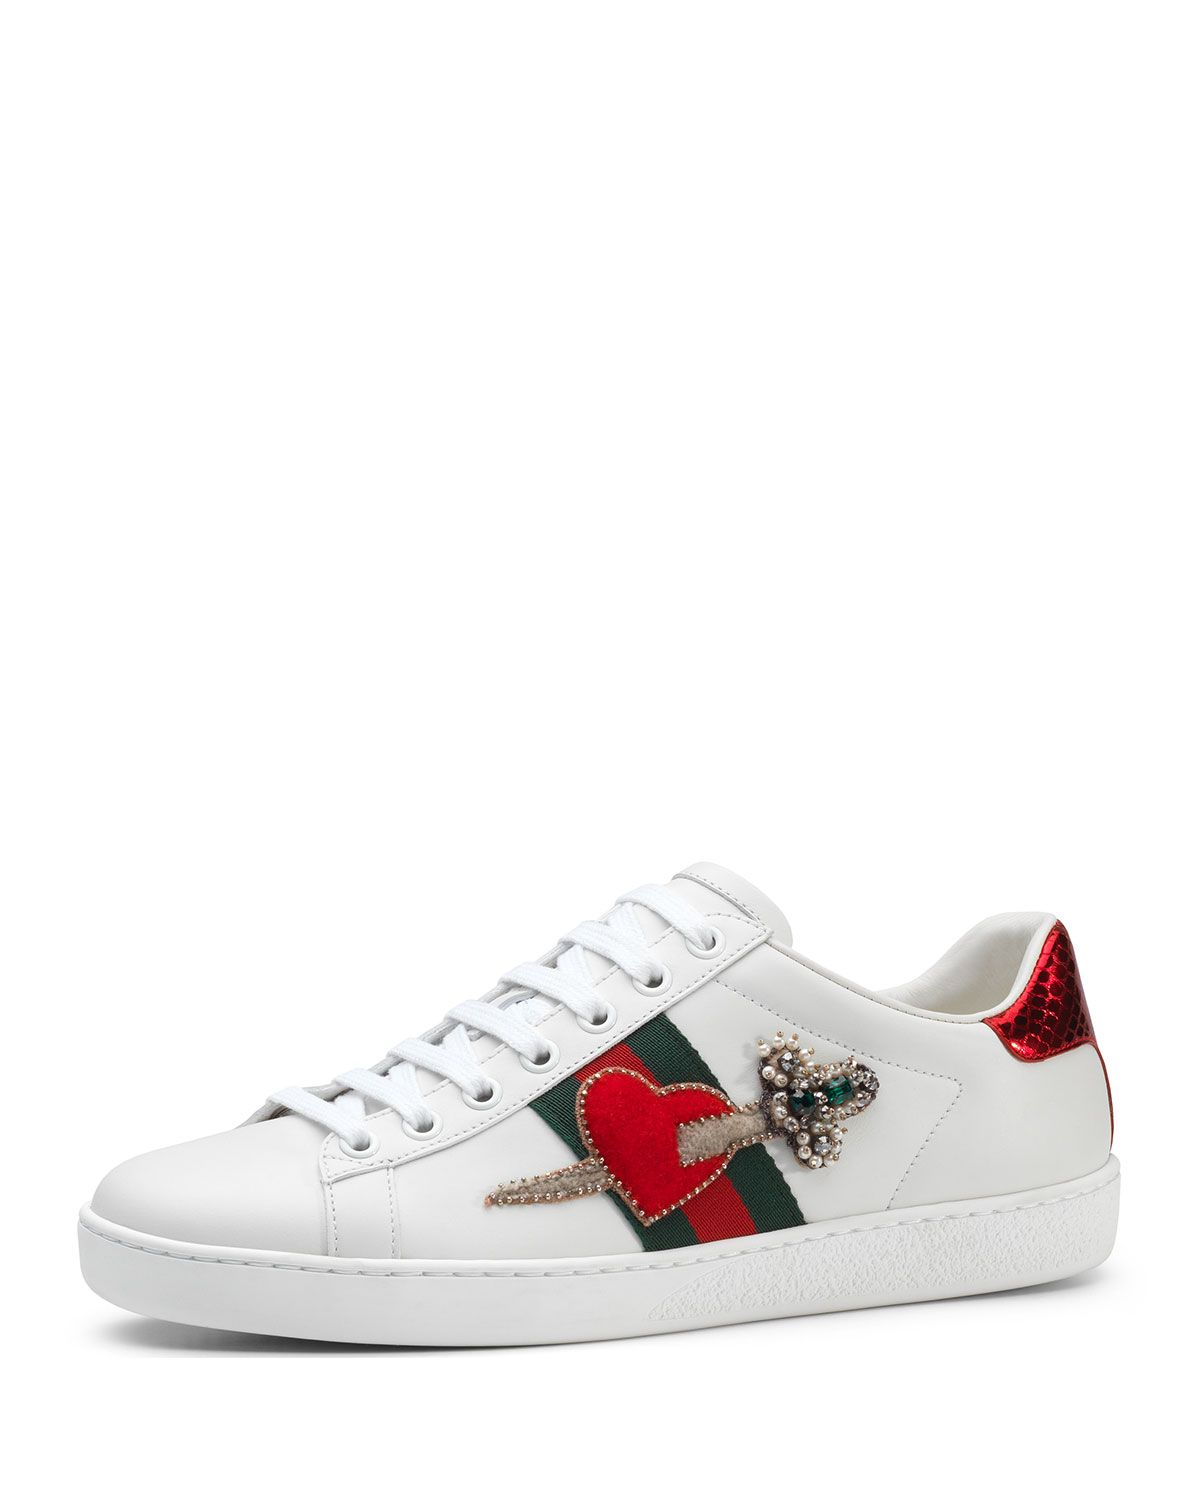 a682f186462 New Ace Pierced Heart Sneakers White